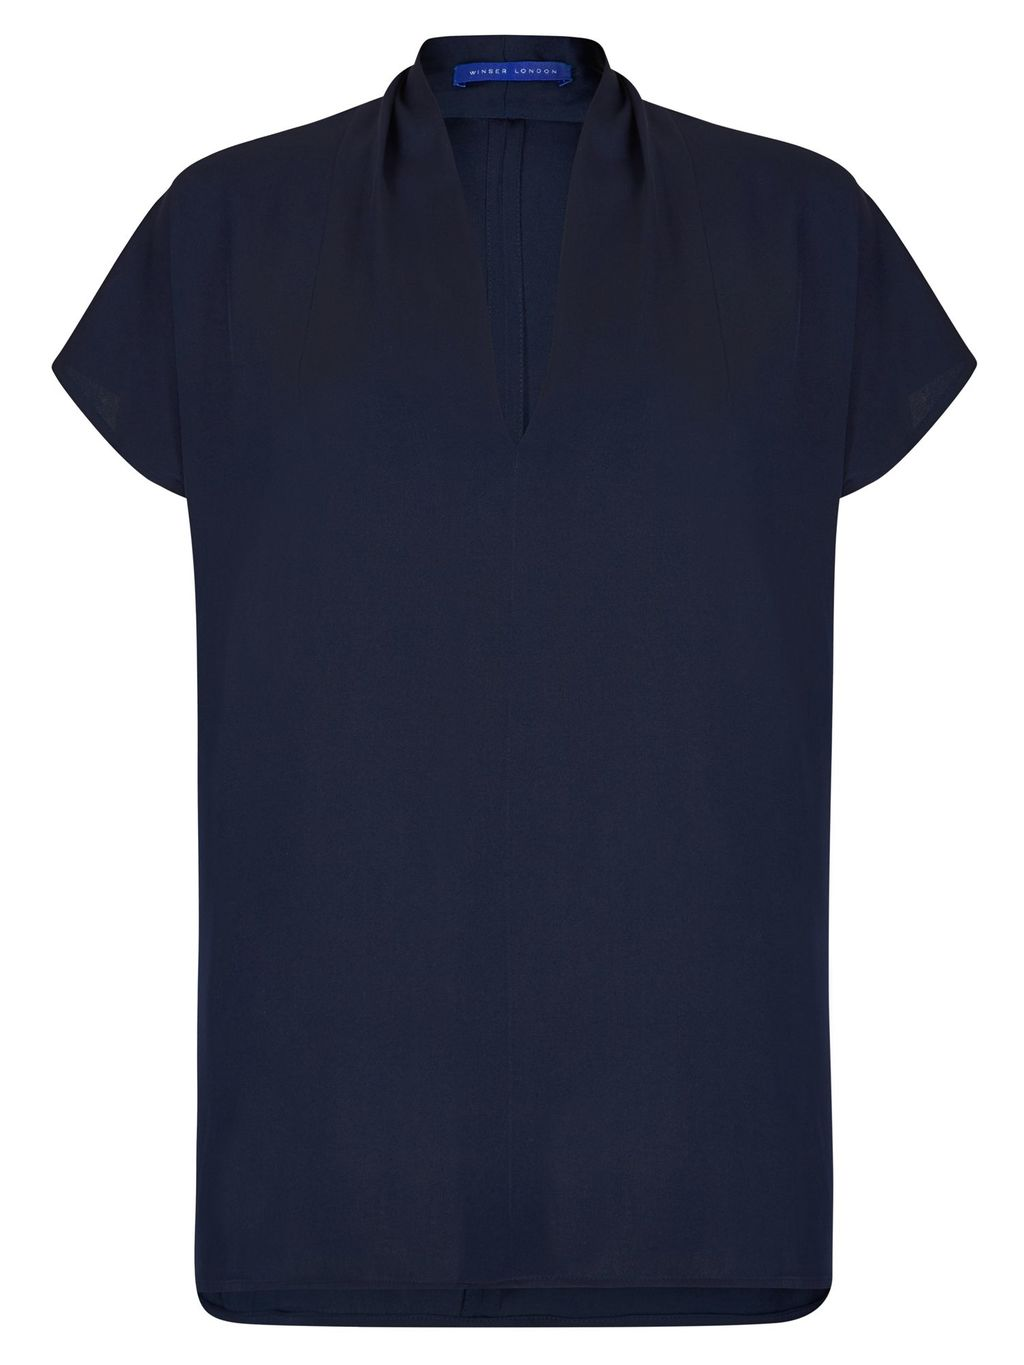 V Neck Silk Top, Navy - neckline: v-neck; pattern: plain; predominant colour: navy; occasions: casual; length: standard; style: top; fibres: silk - 100%; fit: body skimming; sleeve length: short sleeve; sleeve style: standard; texture group: silky - light; pattern type: fabric; season: s/s 2016; wardrobe: basic